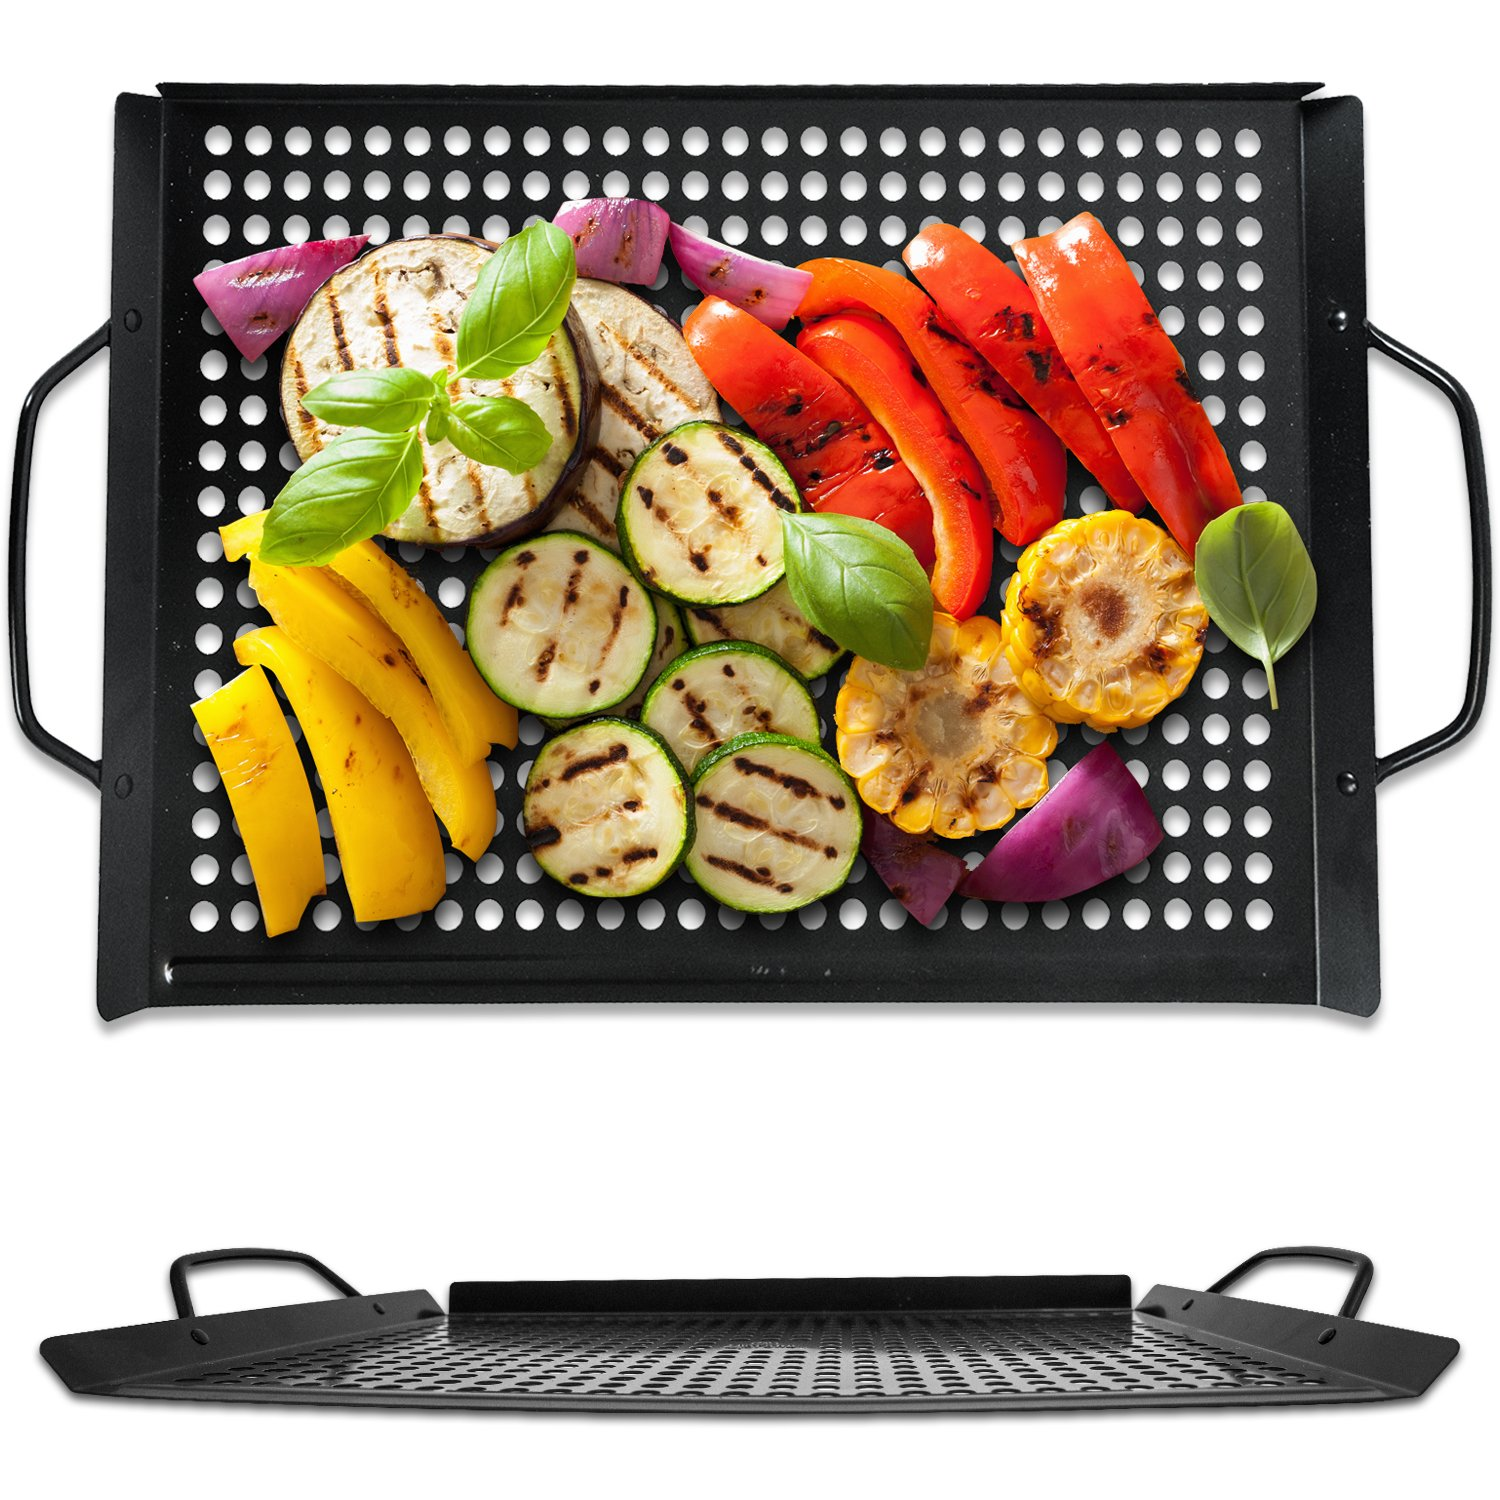 Corona BBQ Grill Accessories Set - Extra Large 11 x 16 Inch BBQ Grilling Pan as a NonStick Grill Basket for Outdoor/ Indoor or Charcoal Grill Tools